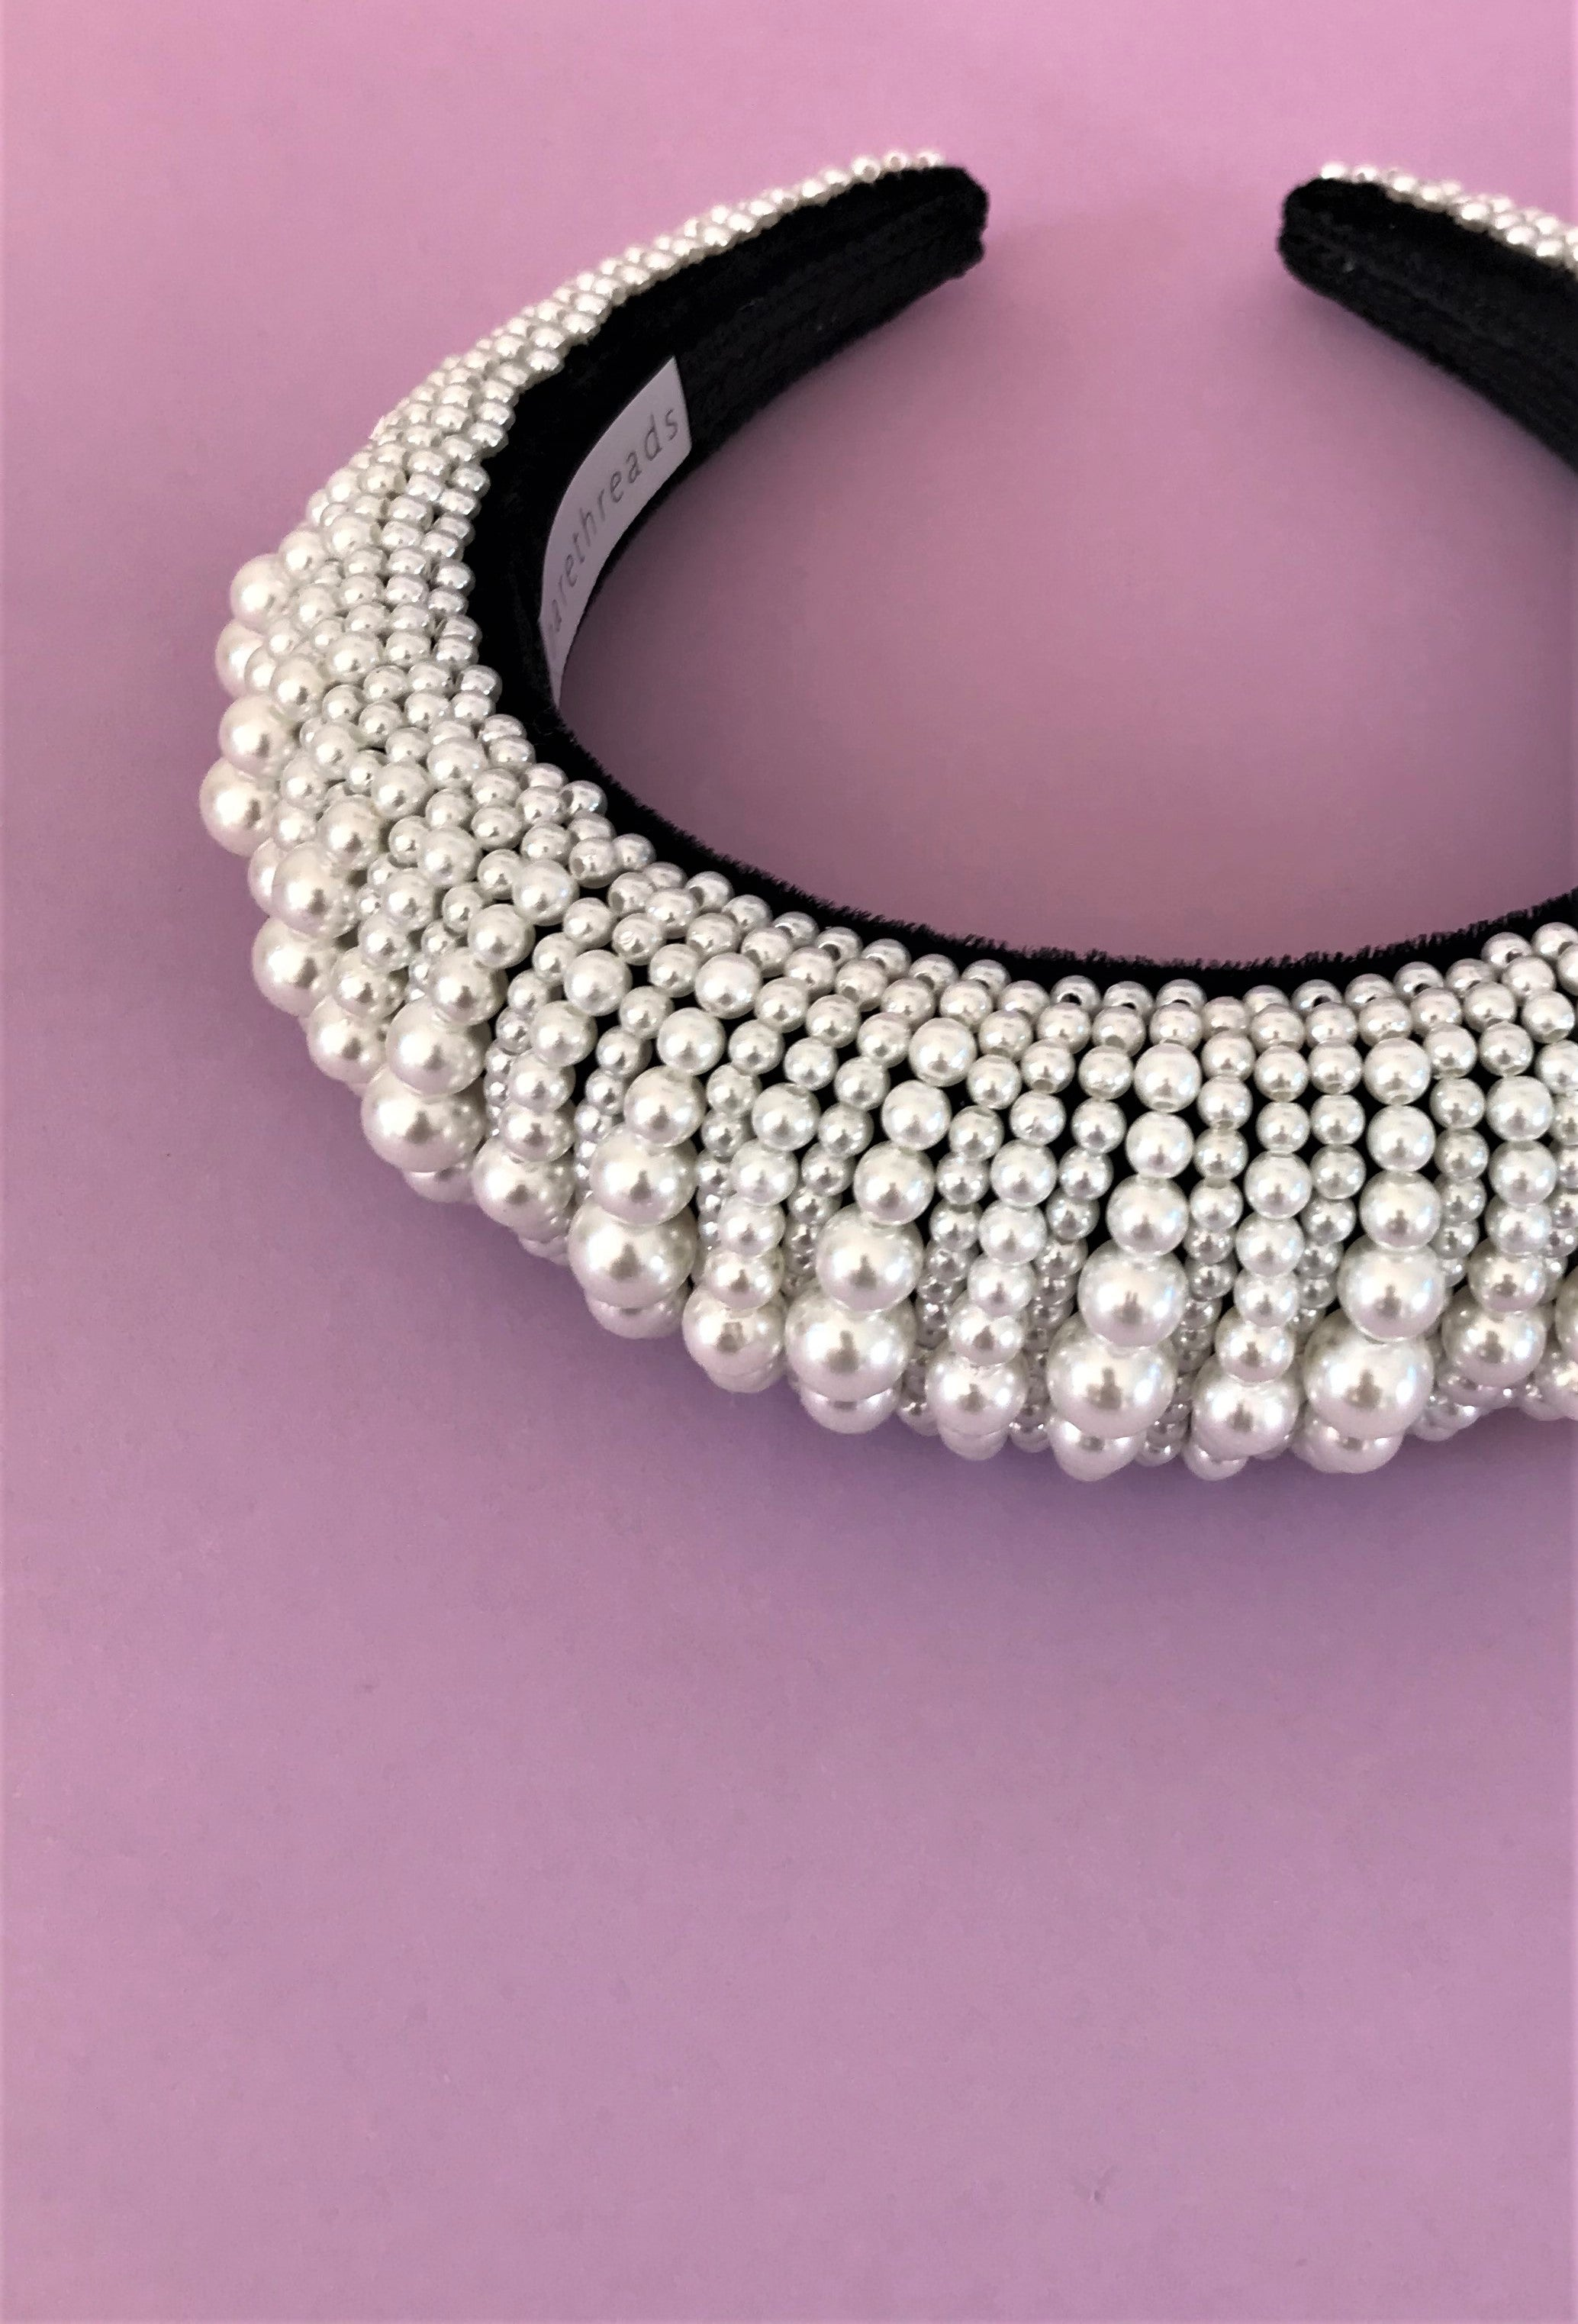 THE ASTERIA PADDED PEARL BAND